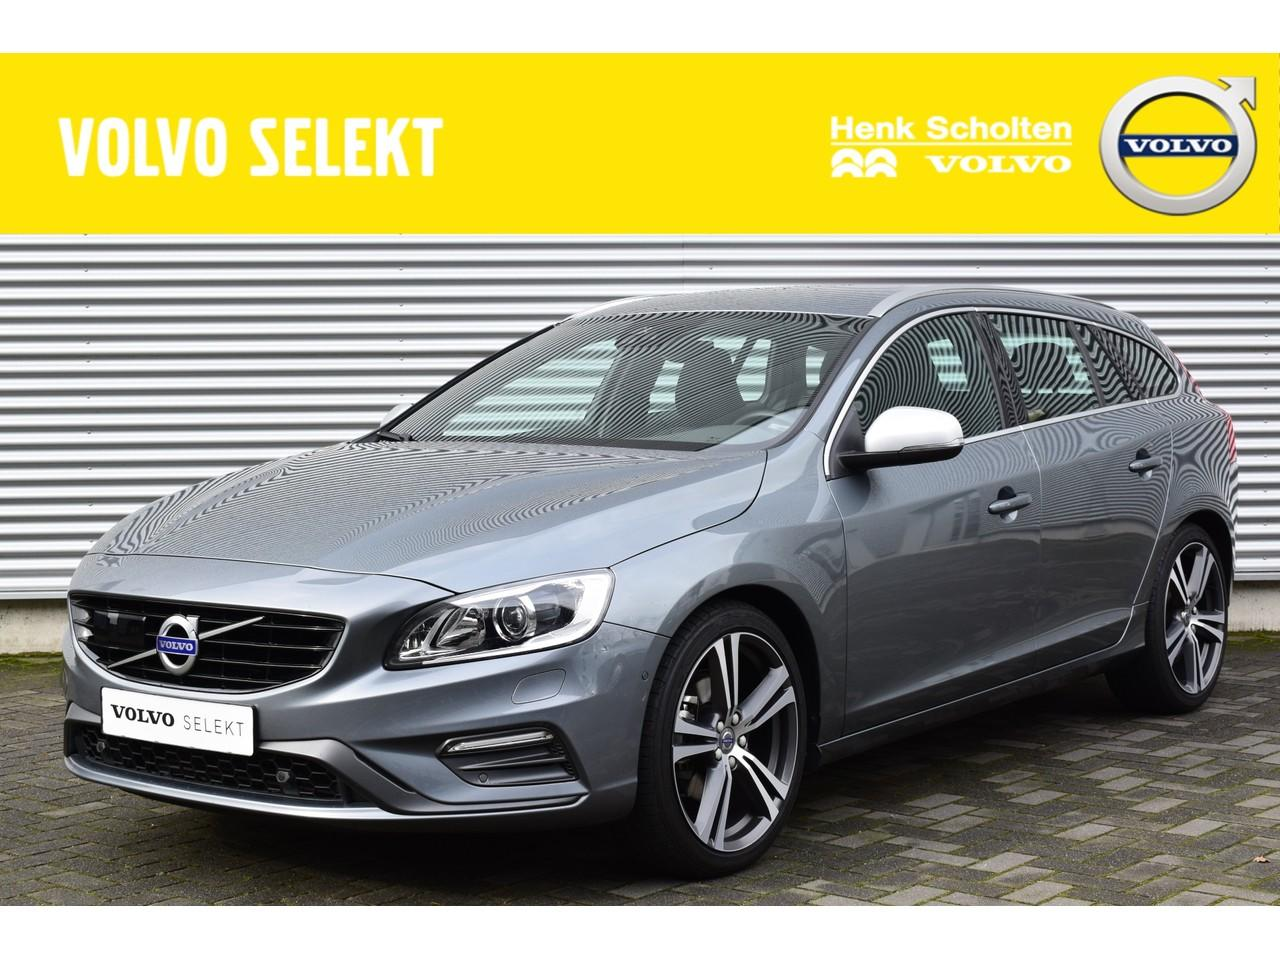 Volvo V60 D2 120pk start/stop geartronic r-design